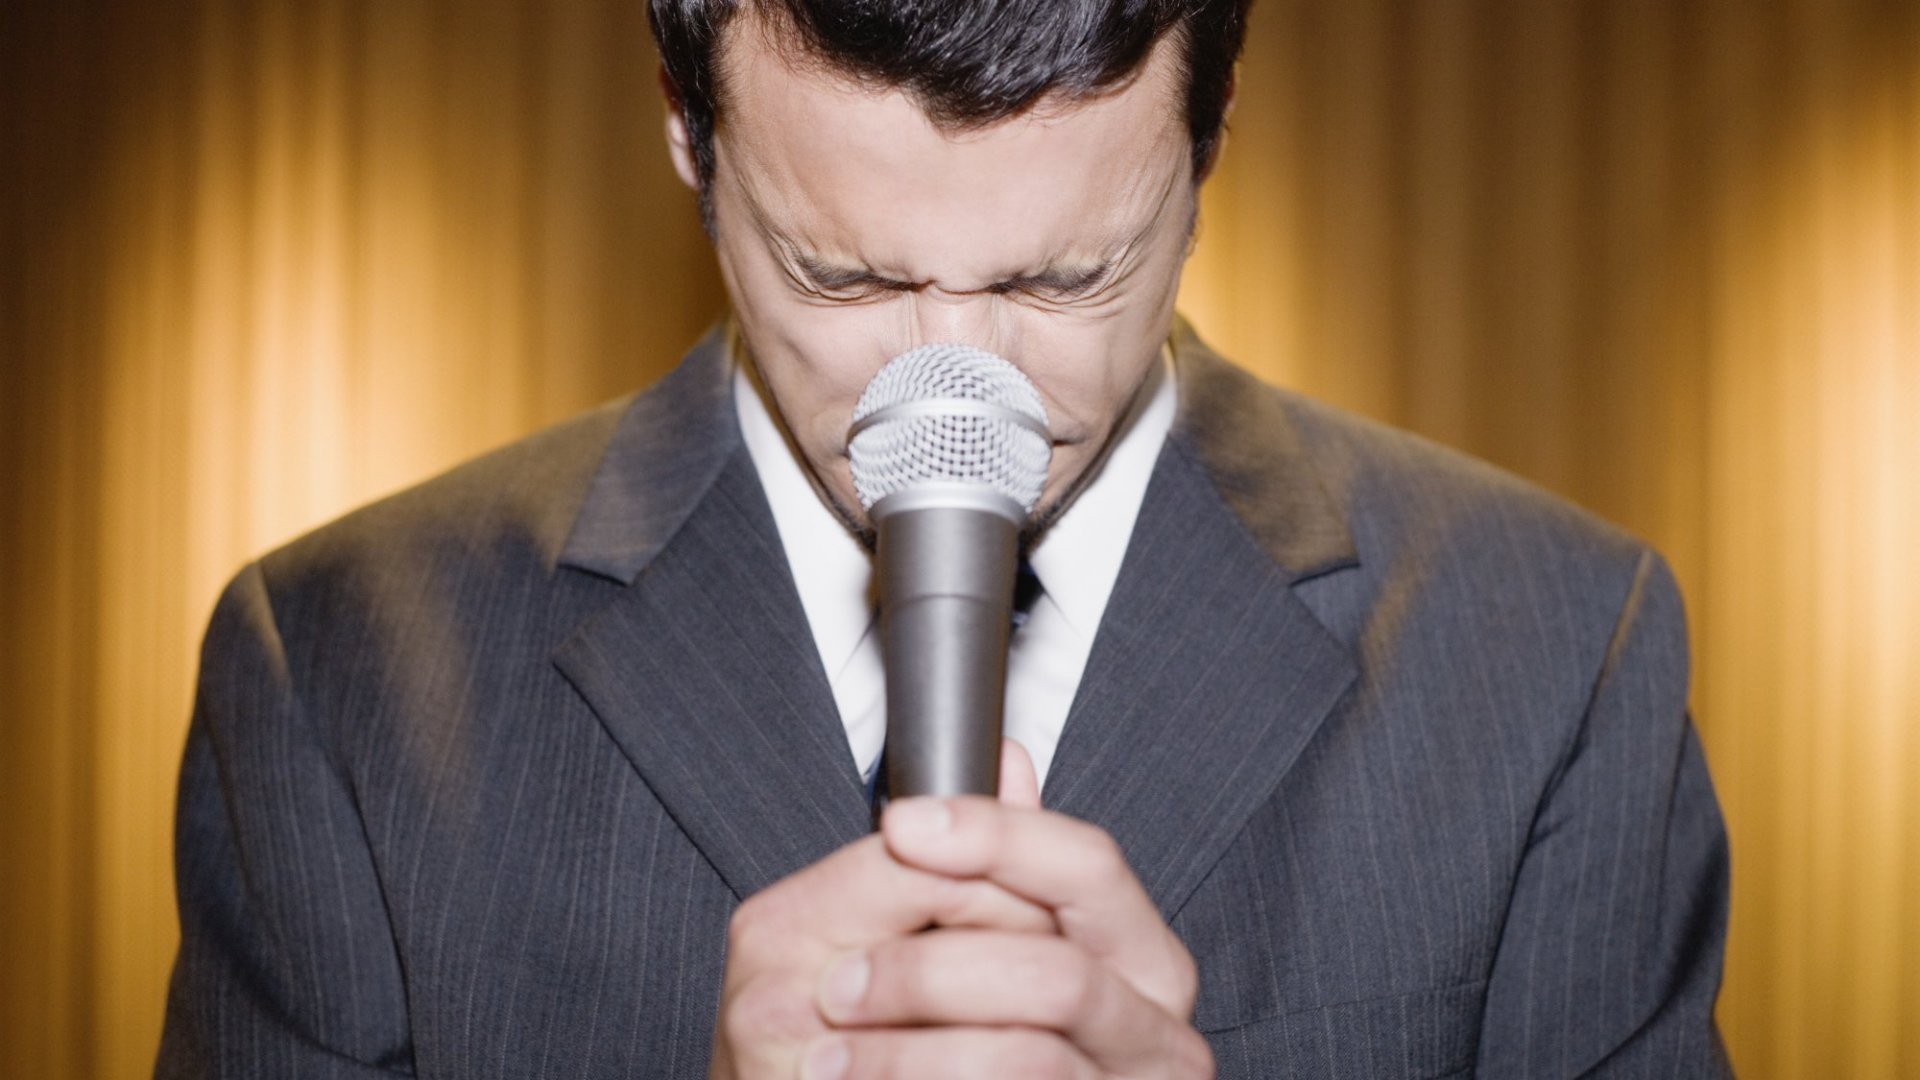 Need to Memorize a Speech? Here's the Neuroscience Behind It (and 3 Apps to Help)